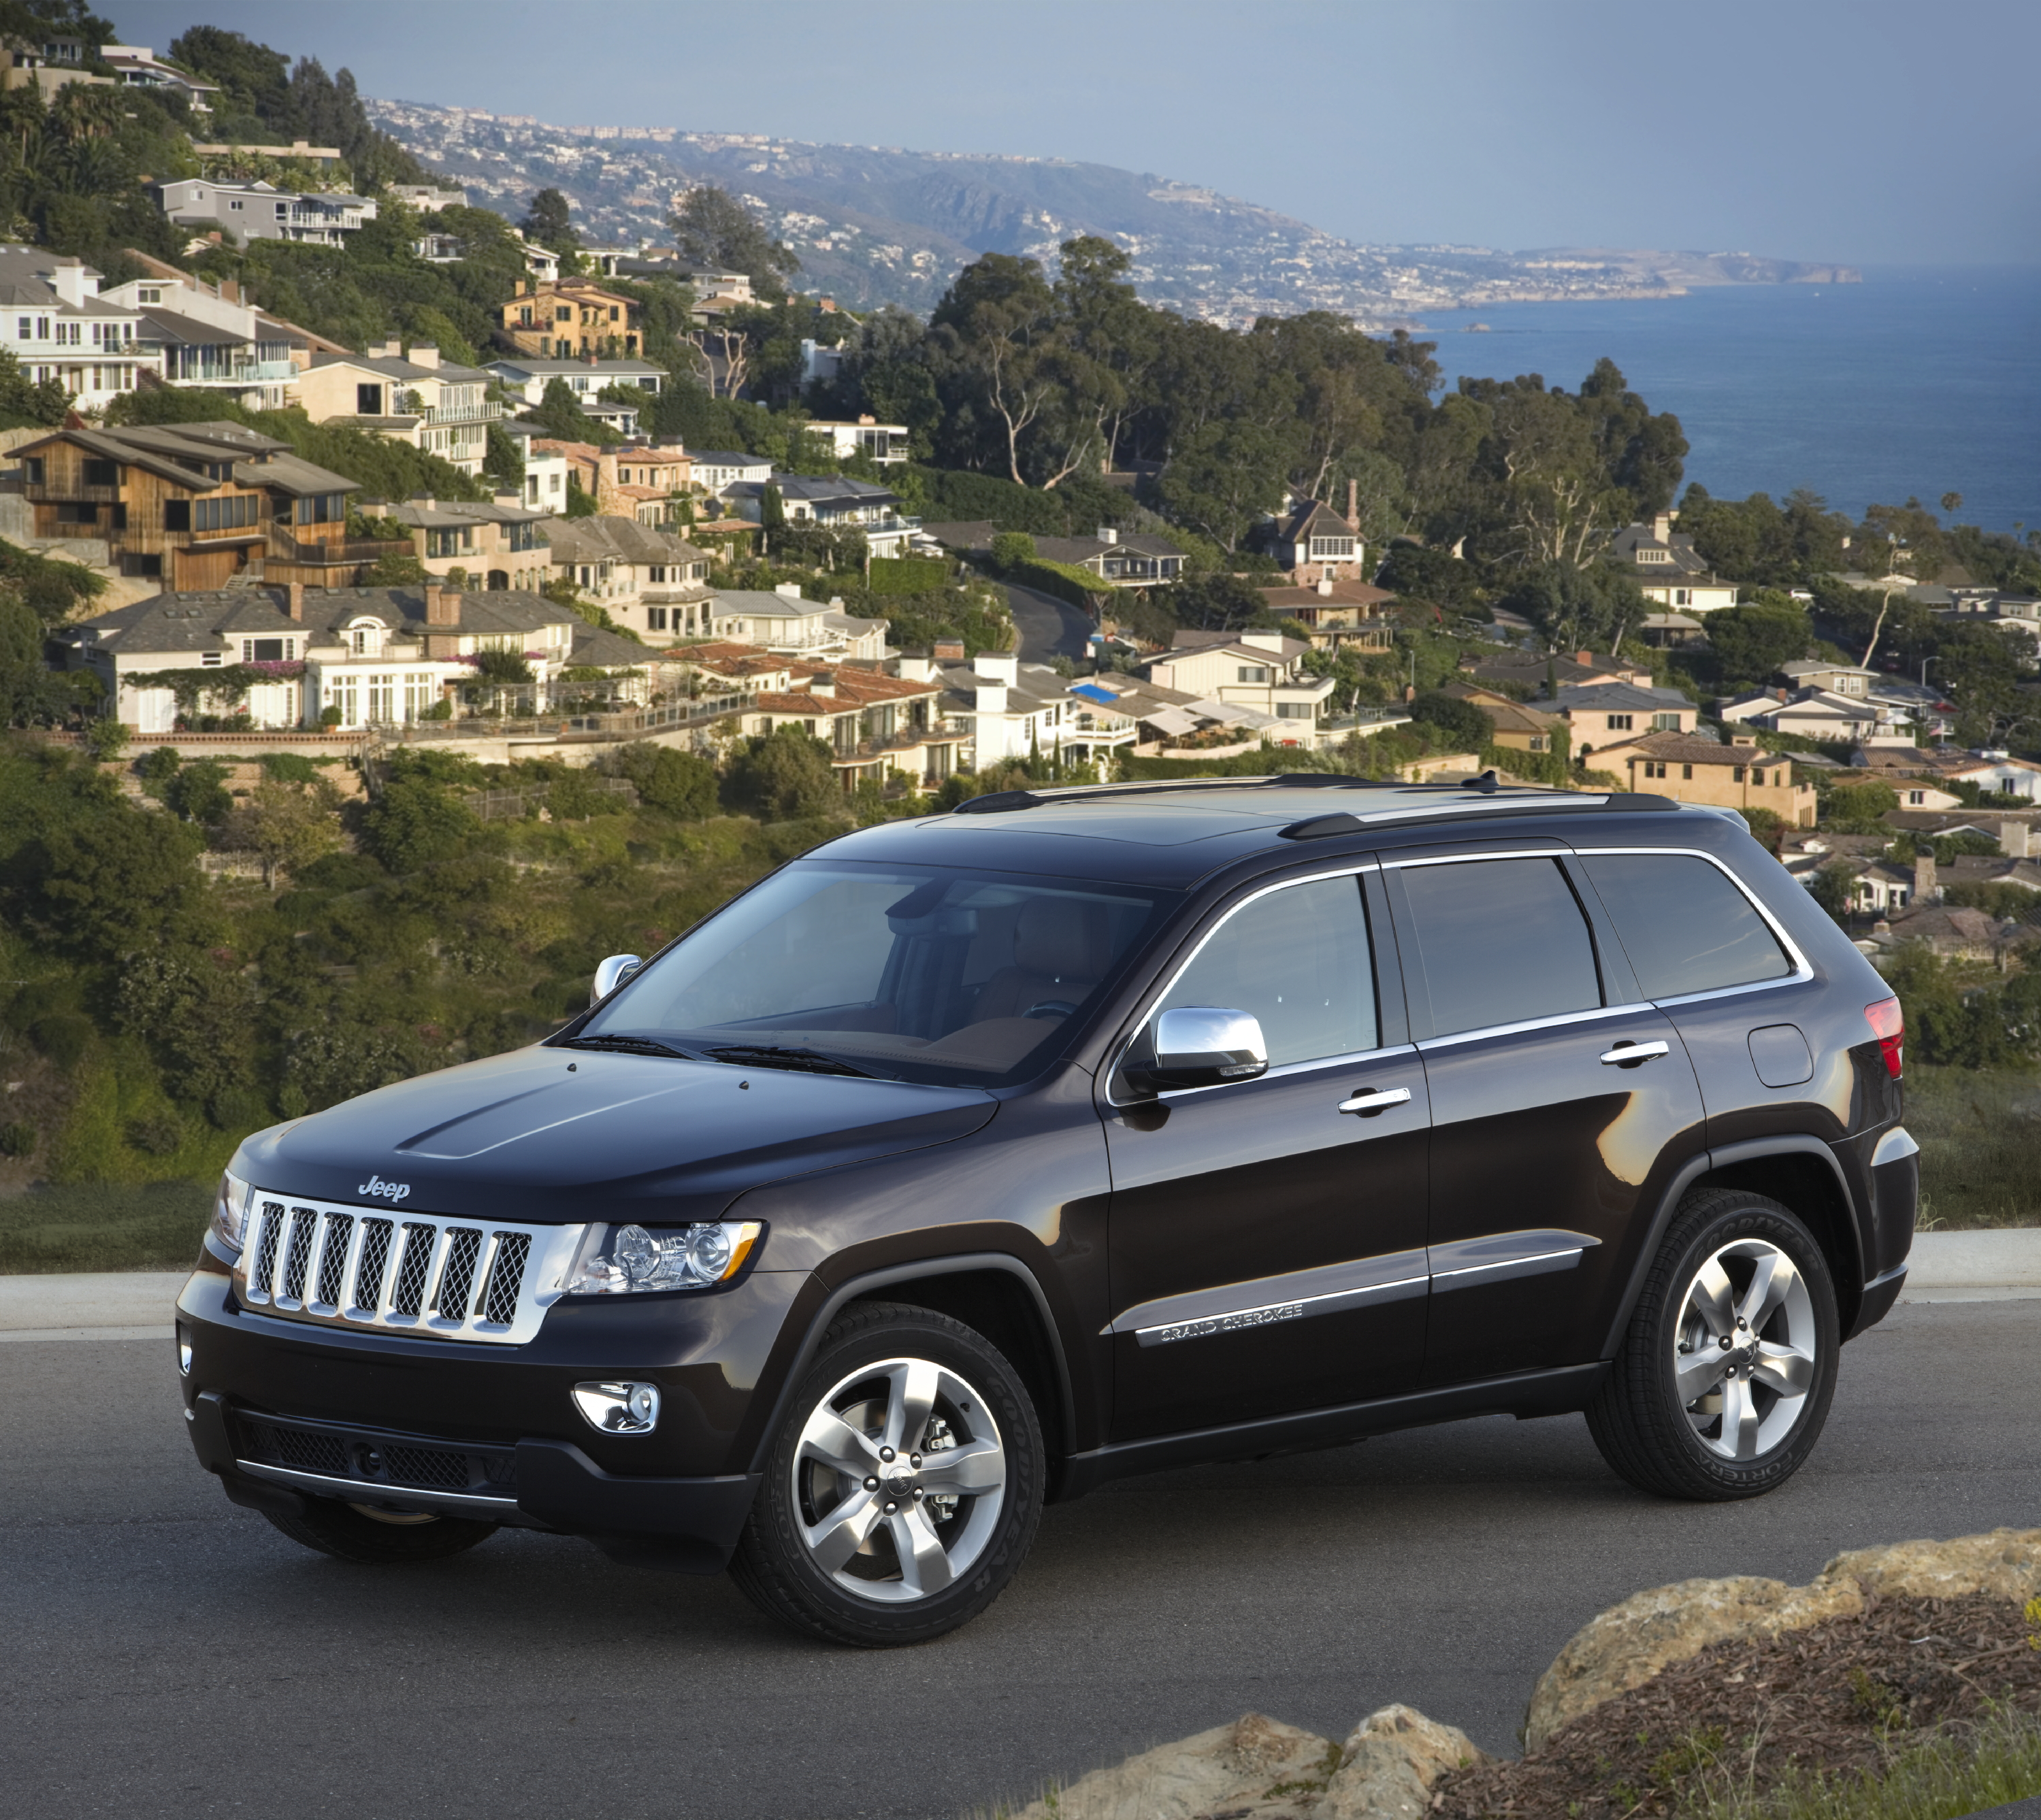 photos jeep summit gallery autoblog grand photo cherokee